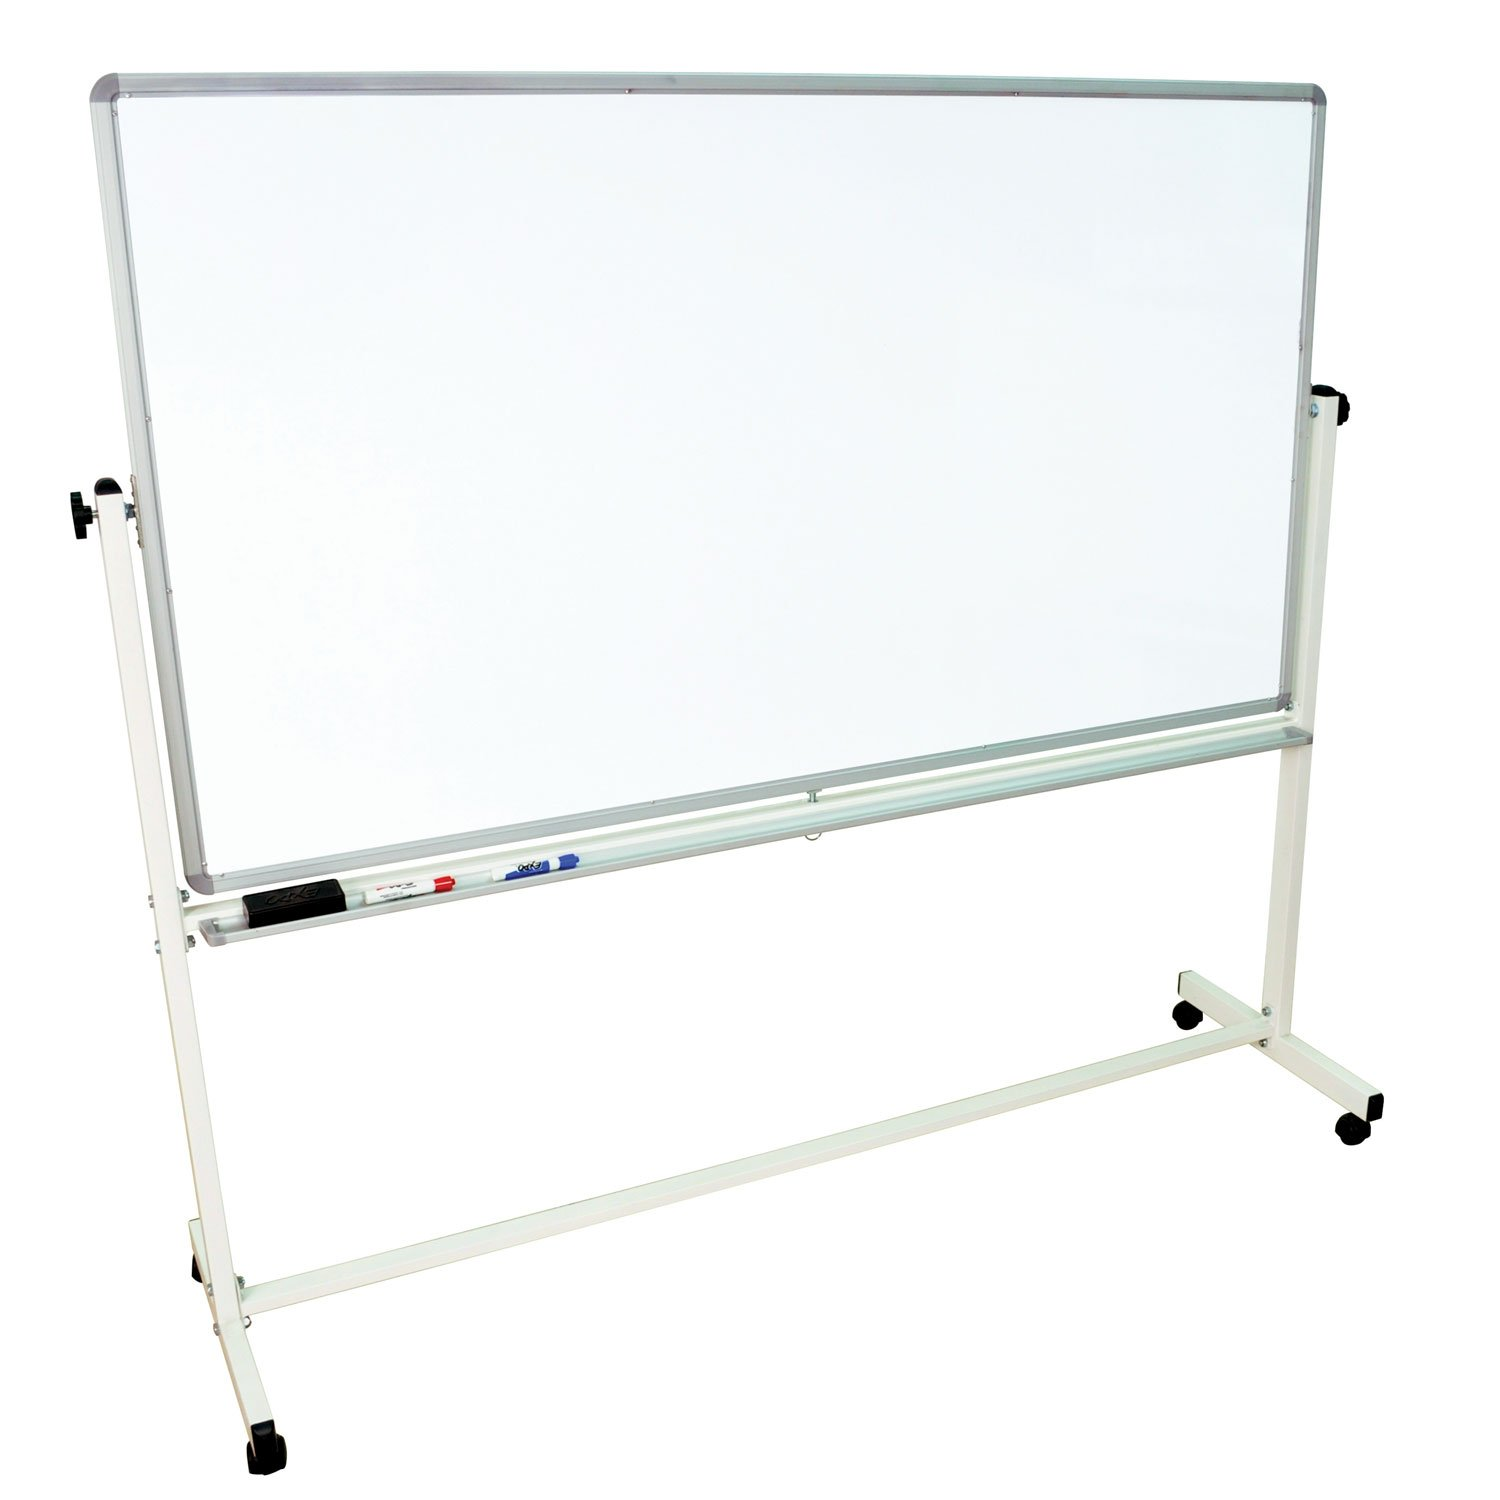 amazon com offex mobile dry erase double sided magnetic whiteboard